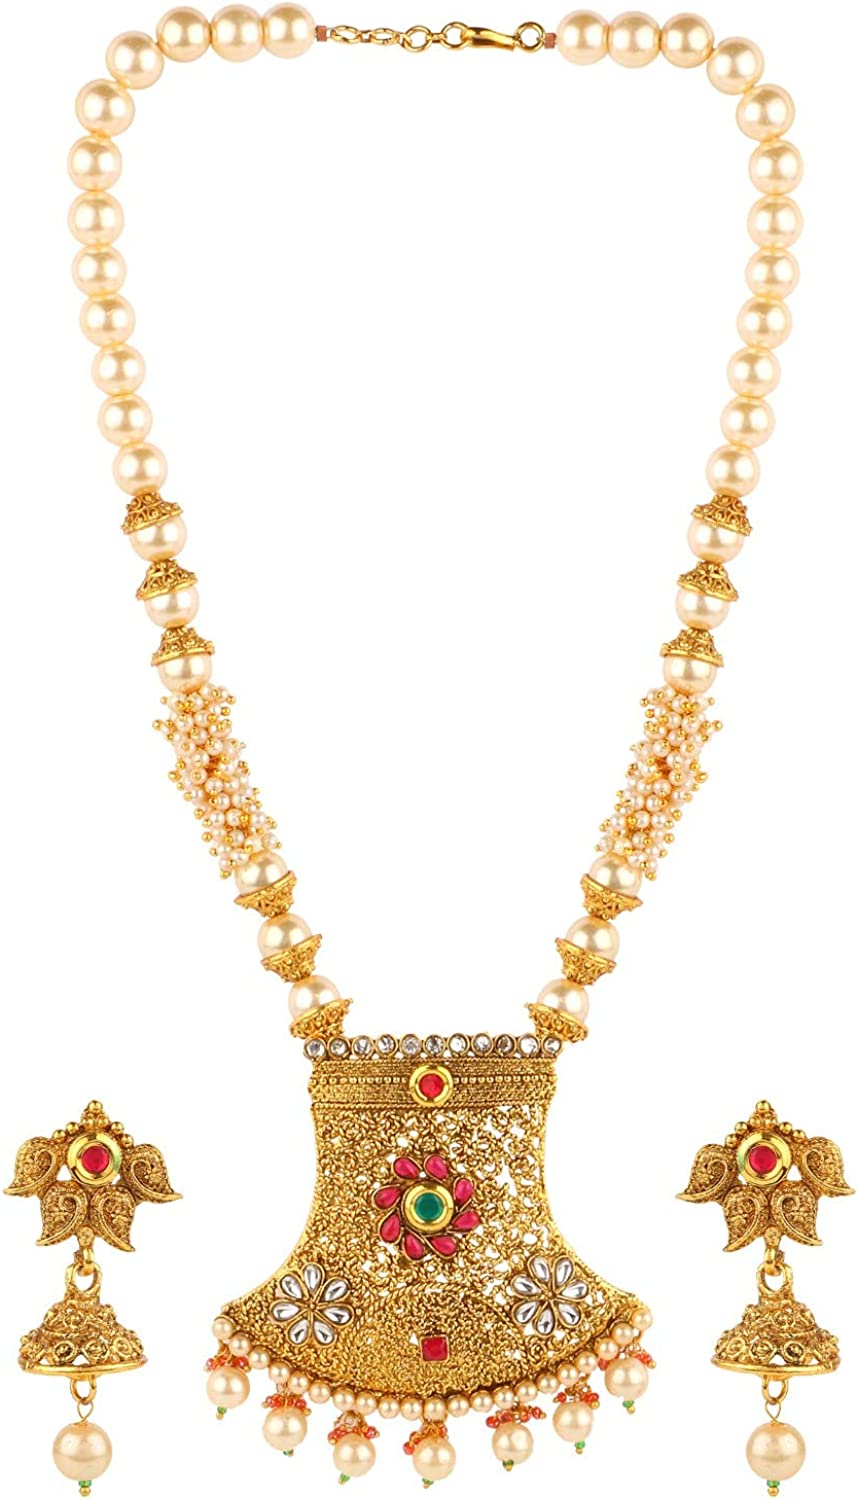 Efulgenz Indian Bollywood Traditional 14 K Gold Plated Crystal Kundan Pearl Beaded Wedding Temple Choker Necklace Earrings Jewelry set